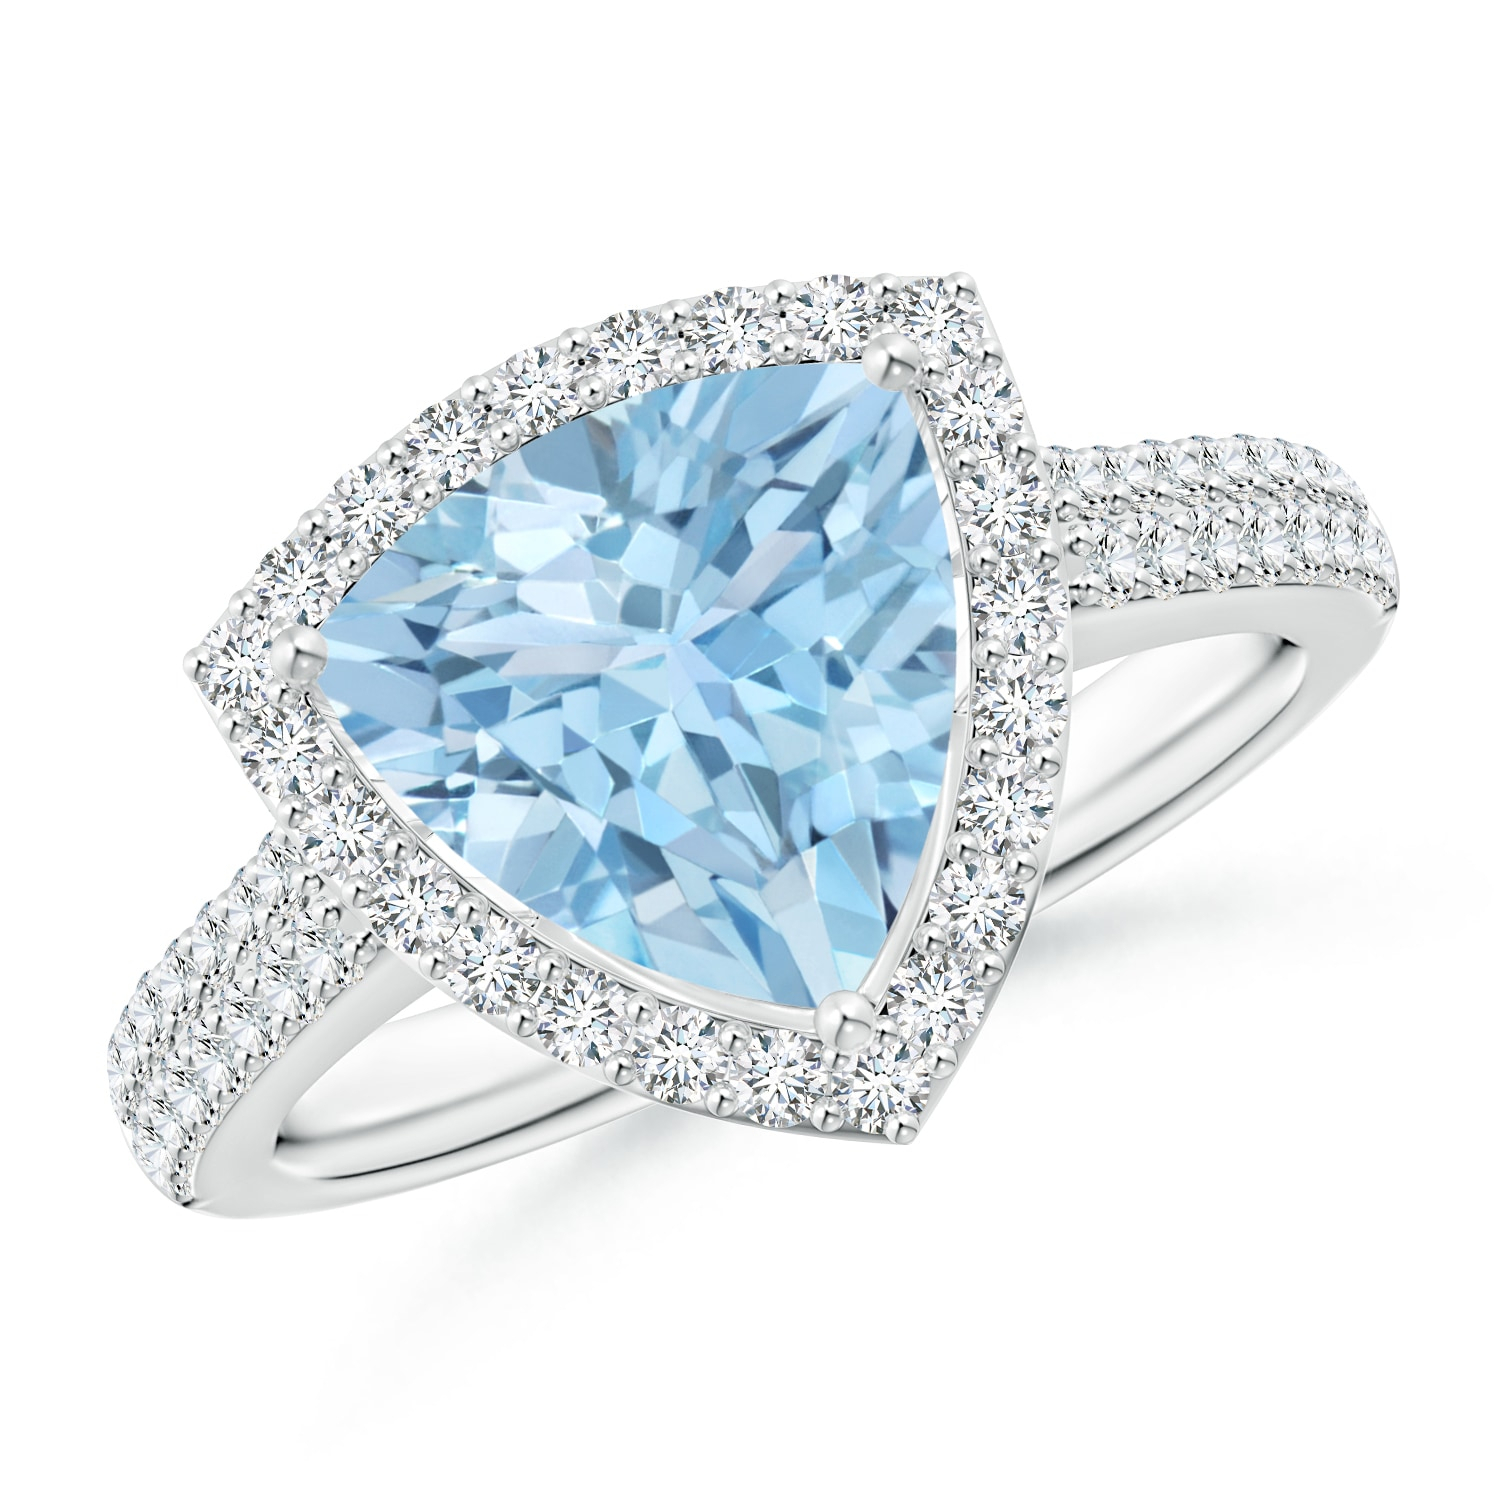 Trillion Aquamarine Cocktail Halo Ring With Diamond Accents Regarding Most Recently Released Sparkling Halo Rings (Gallery 22 of 25)